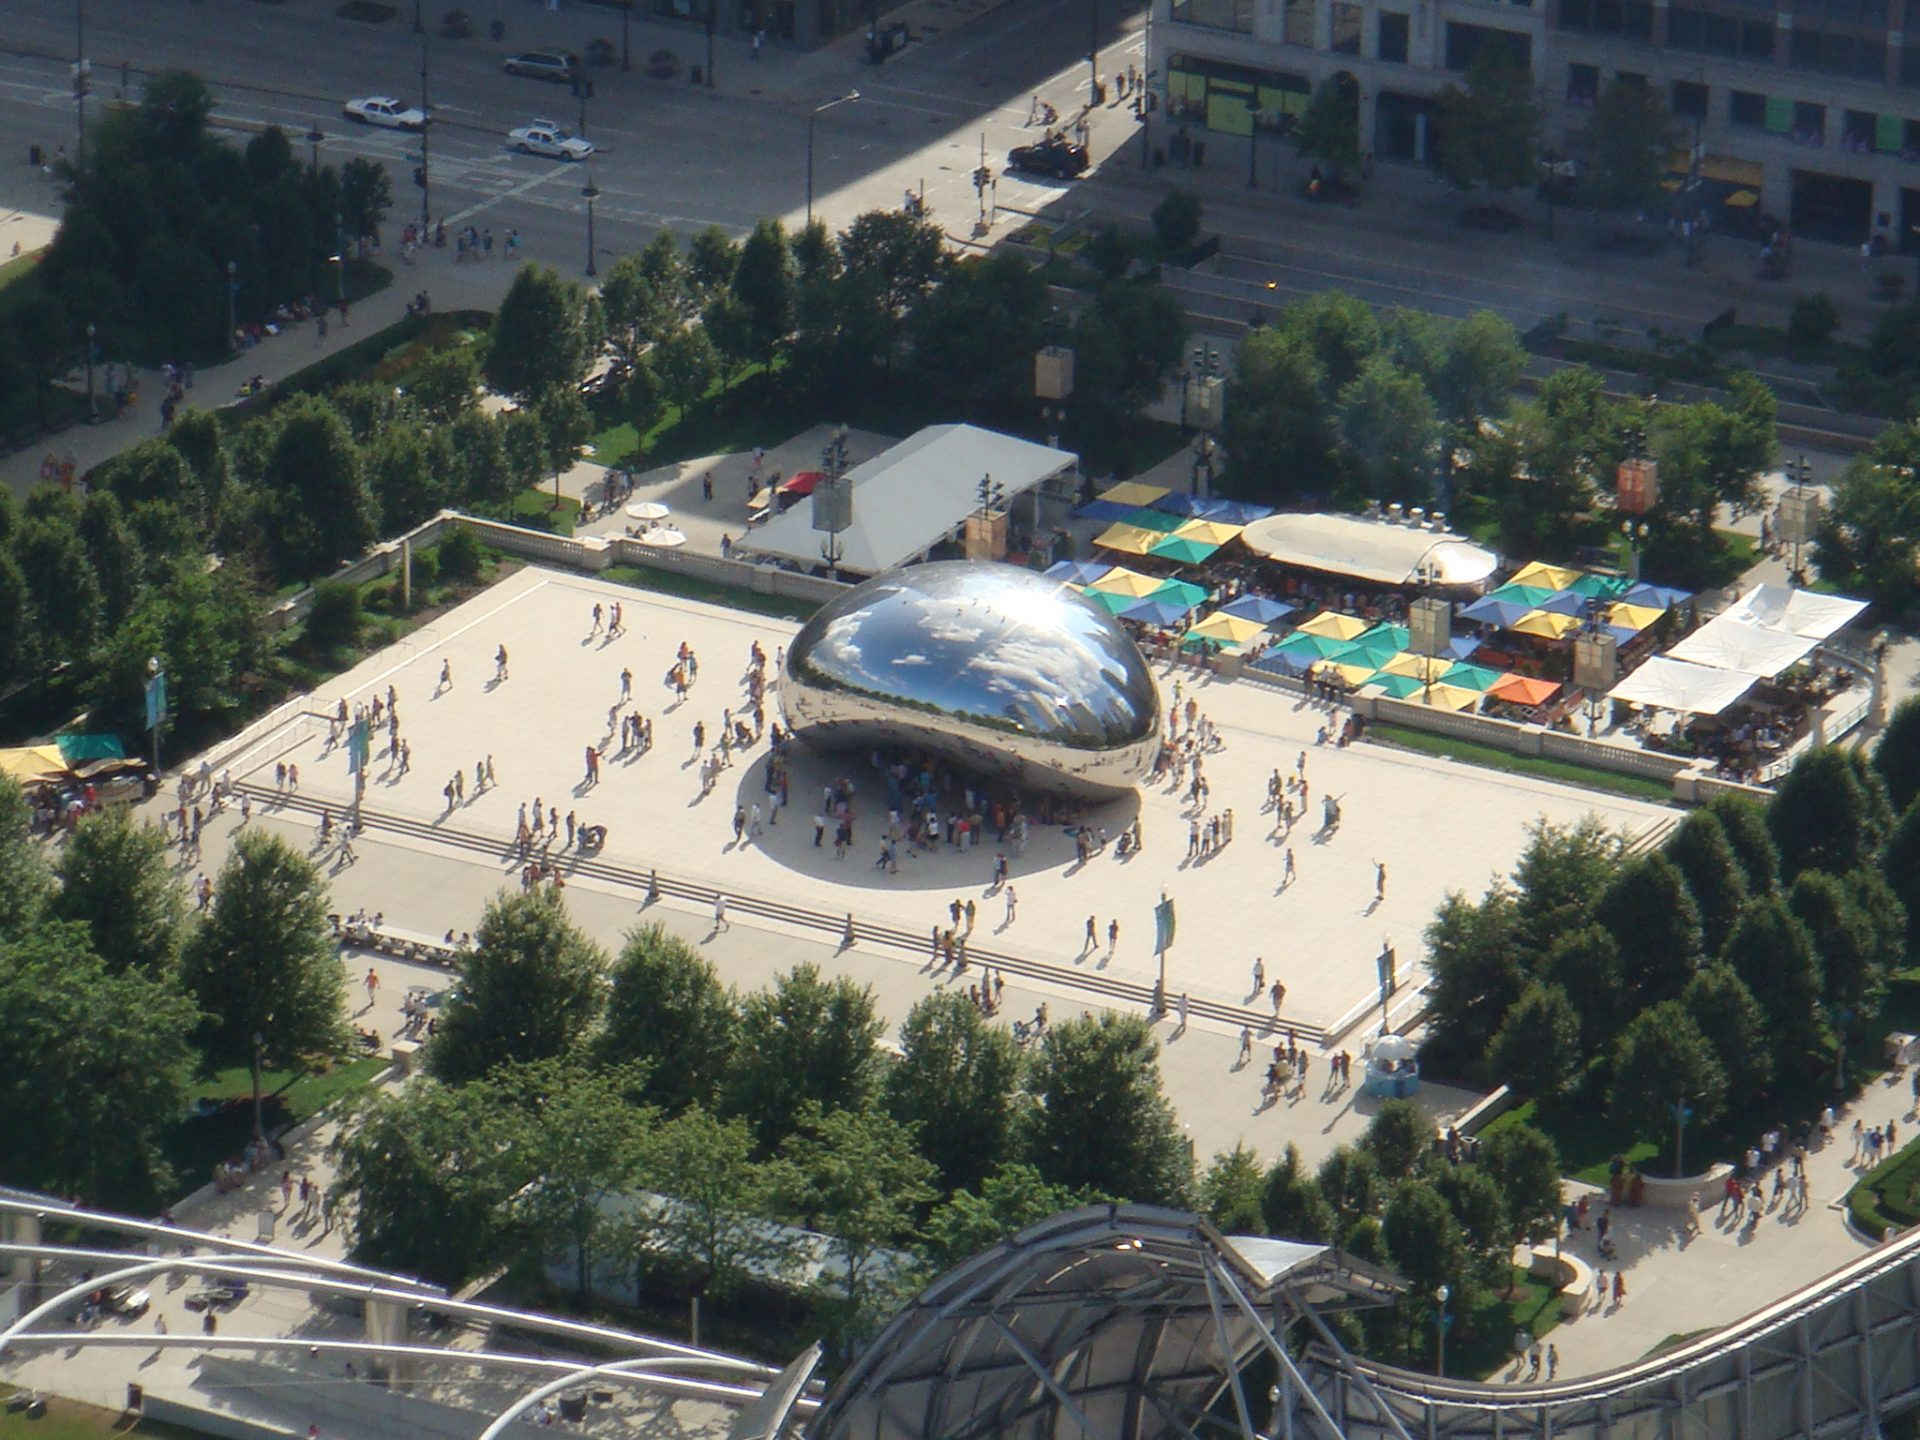 The 'Bean' as it's called by Chicagoans